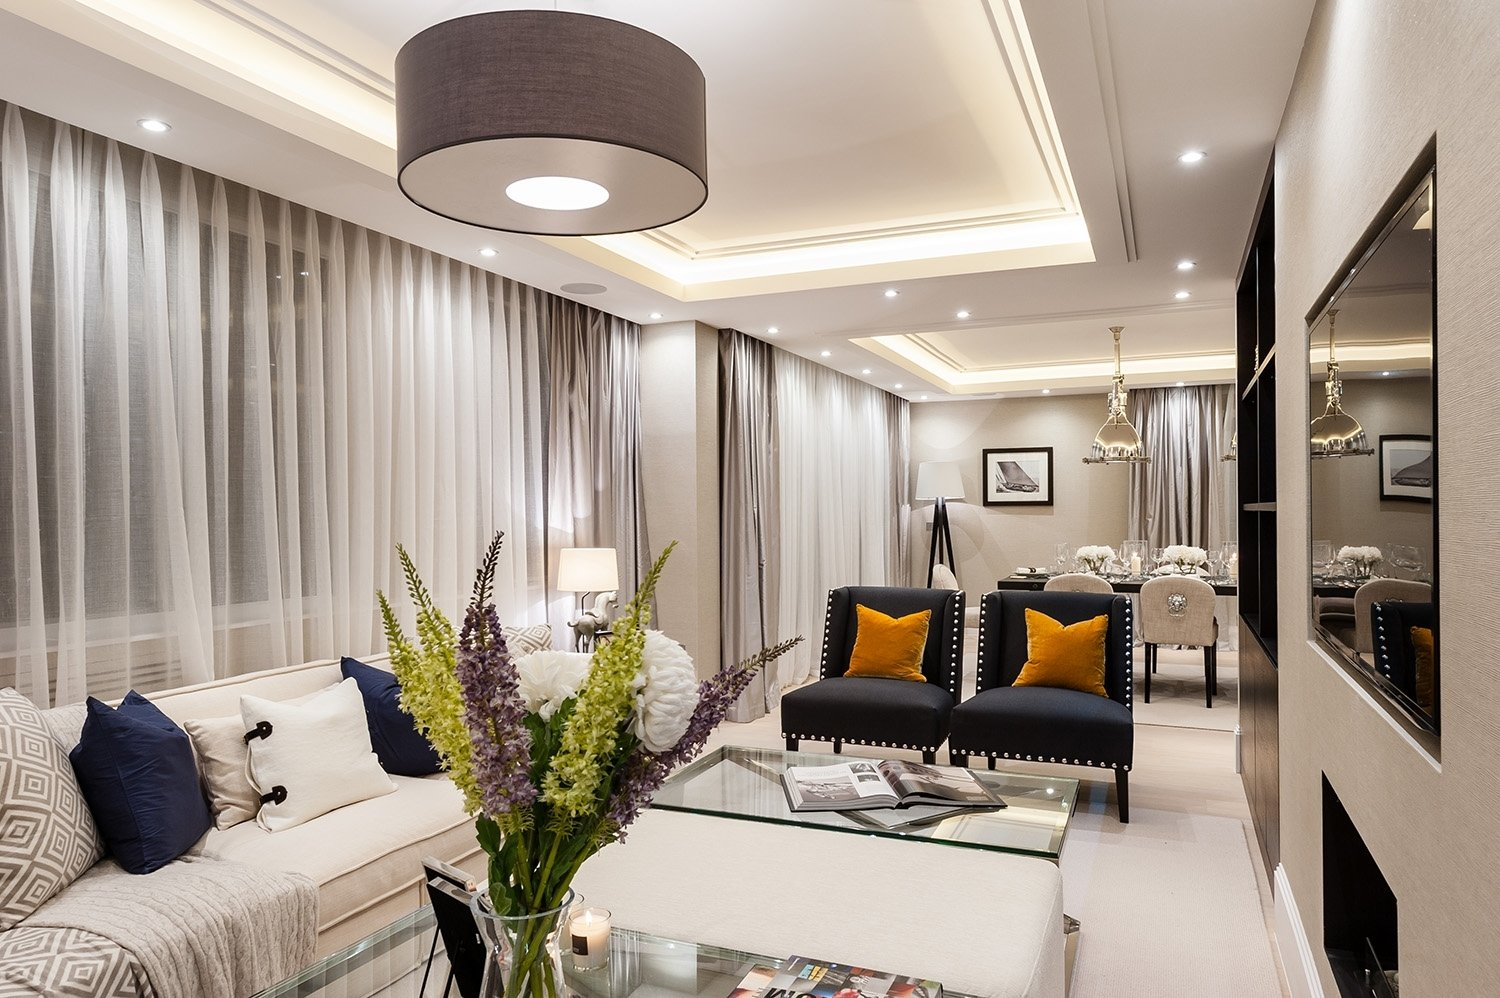 10 Amazing Narrow Living Room Design Ideas living room 22 bright stylish luxury long narrow living room 2020